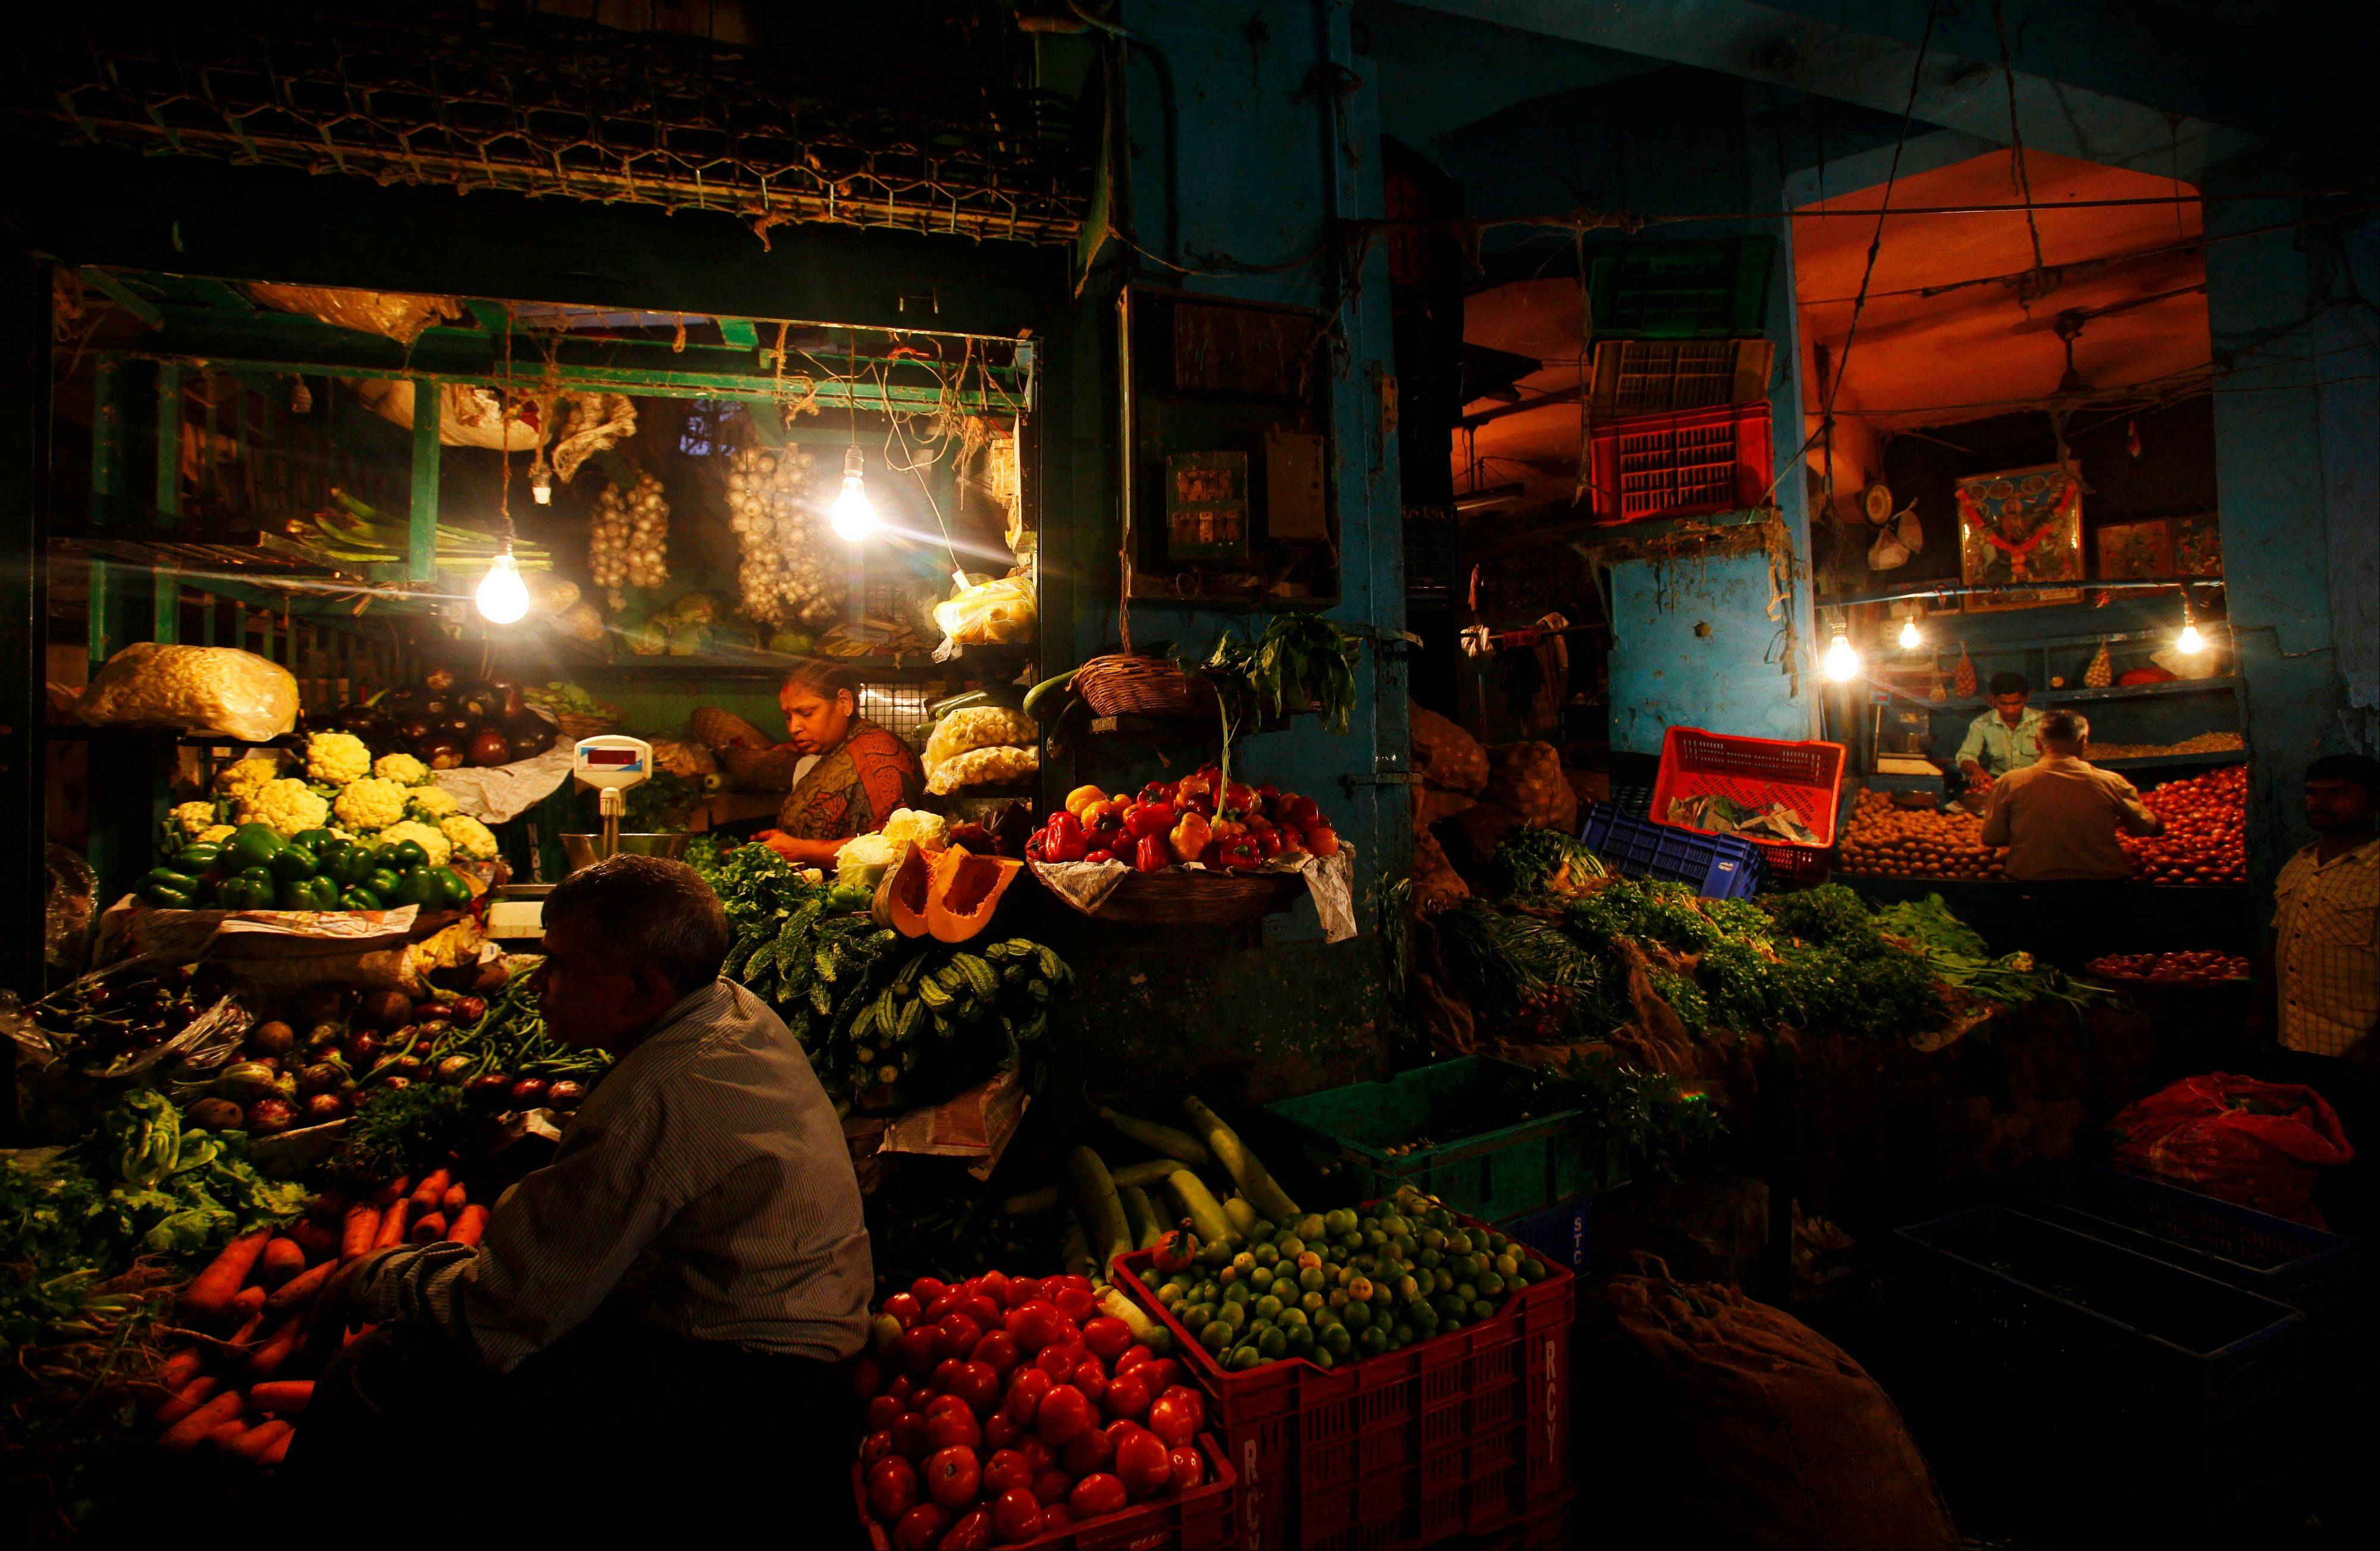 People shop at a vegetable market in Mumbai, India, Monday, Sept. 17, 2012. India�s central bank, Reserve Bank of India, on Monday cut the cash reserve ratio as it tries to